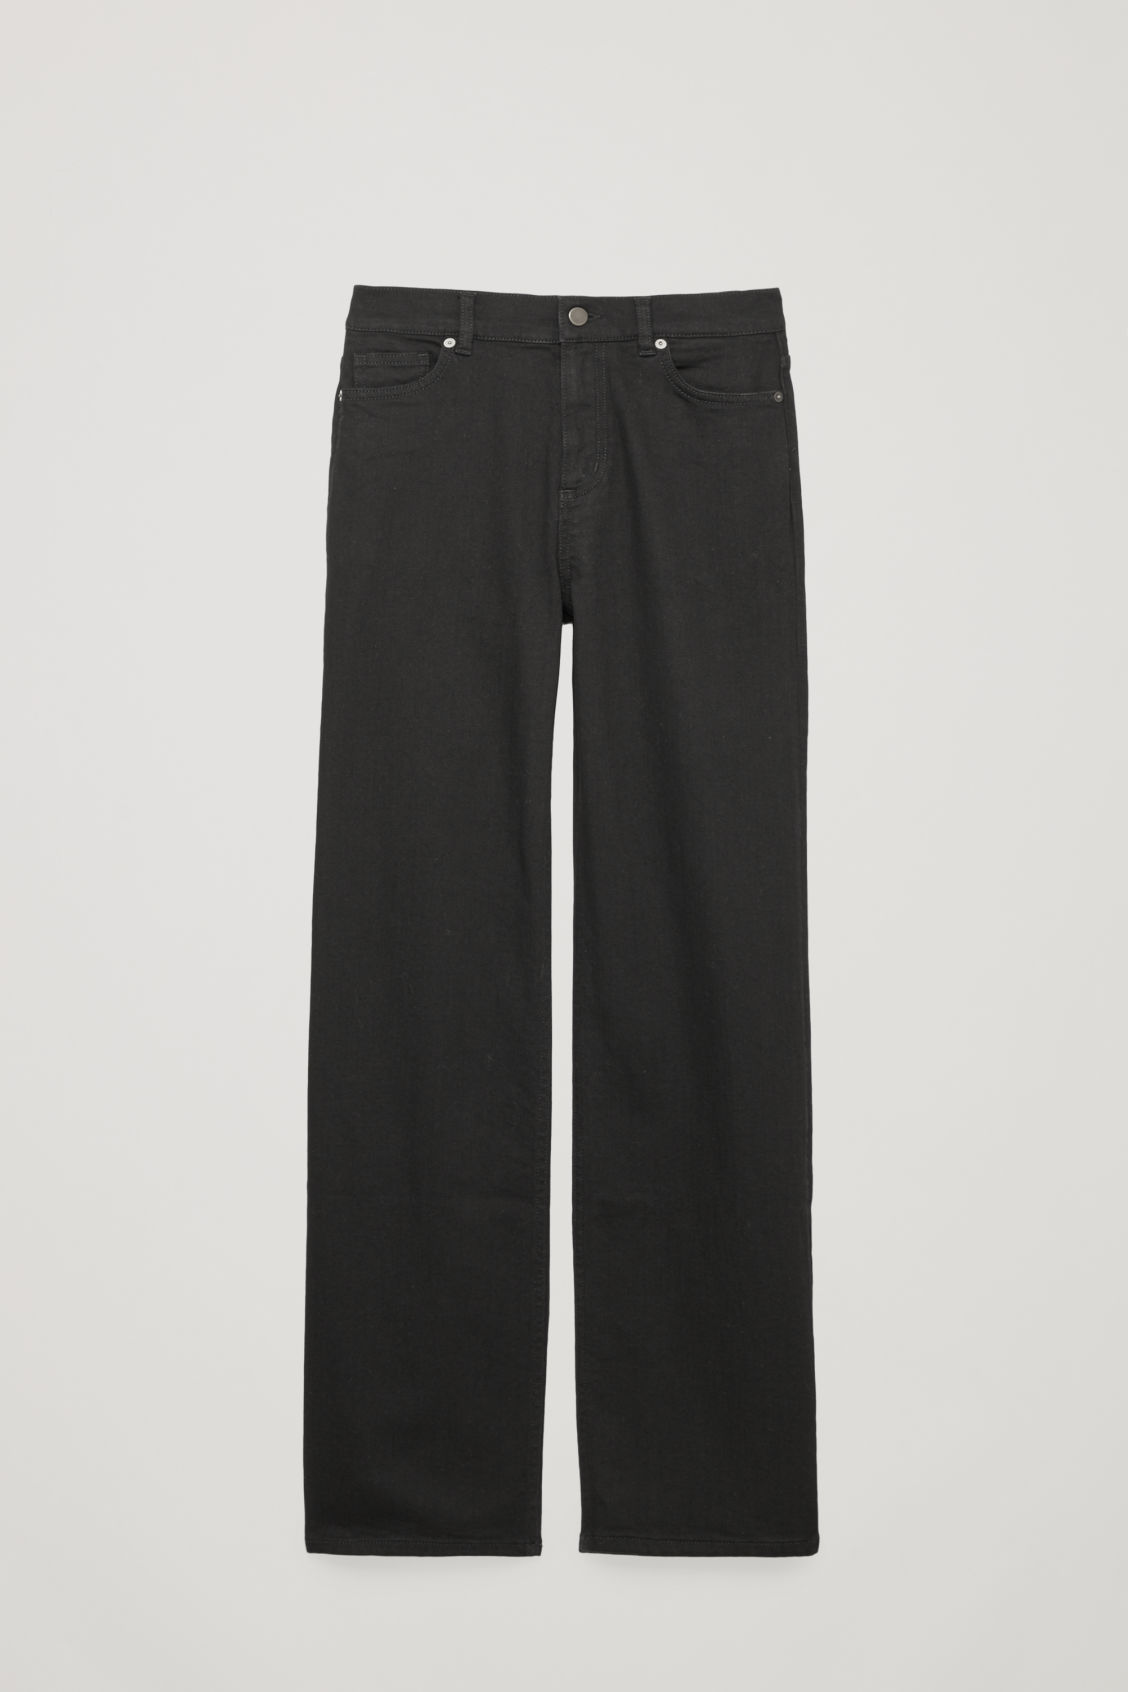 Front image of Cos 32 inch wide leg jeans in black